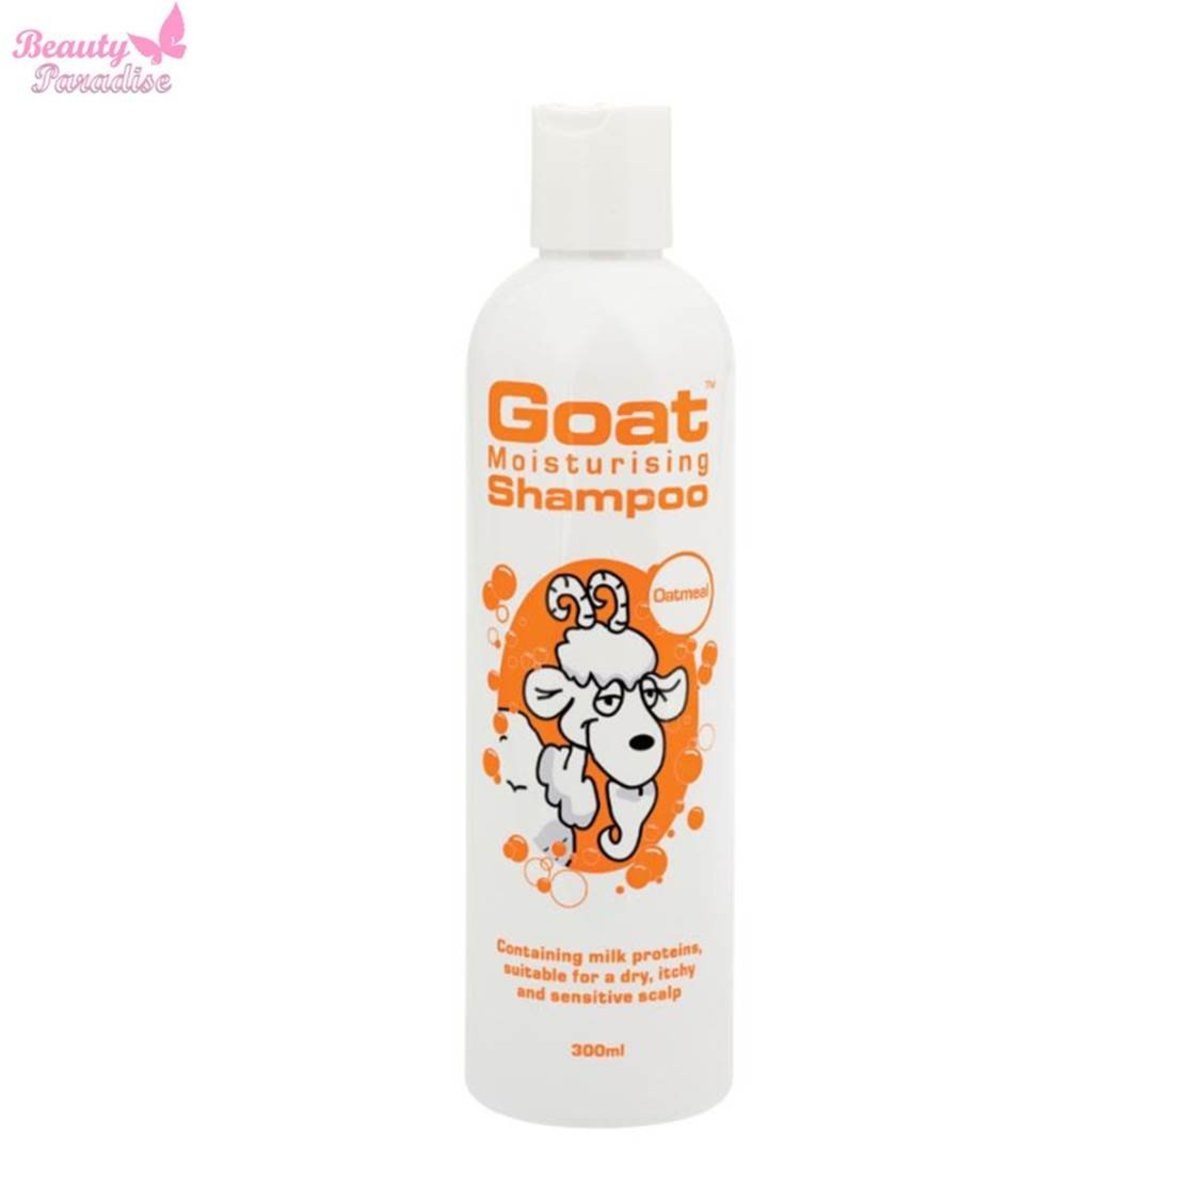 Goat Moisturising Shampoo With Oatmeal 300 ml